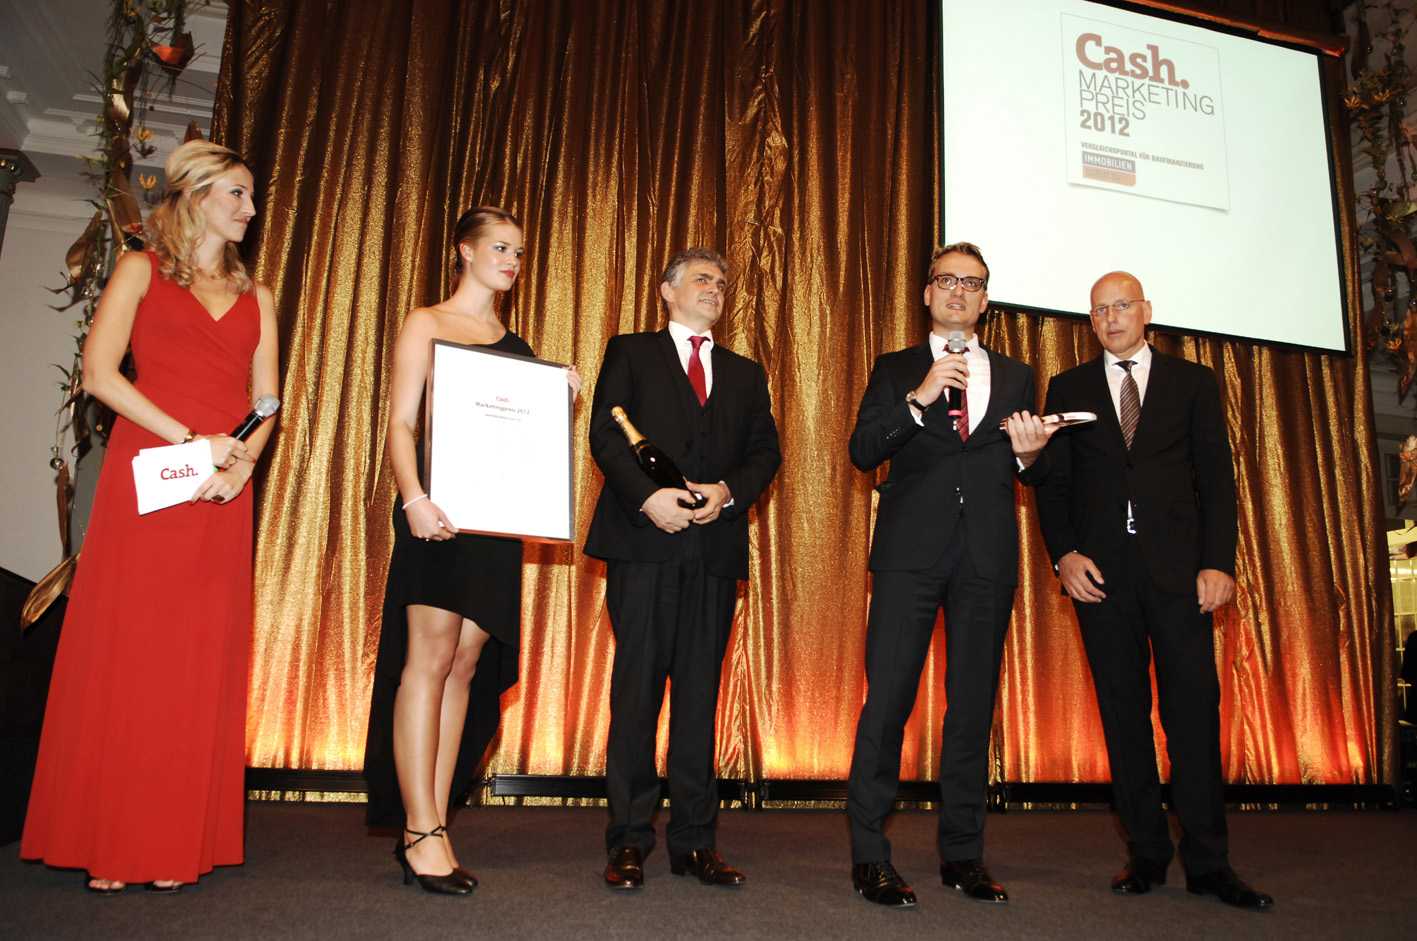 Cash-gala-3 in Cash.Gala 2012: das Top-Event in Bildern